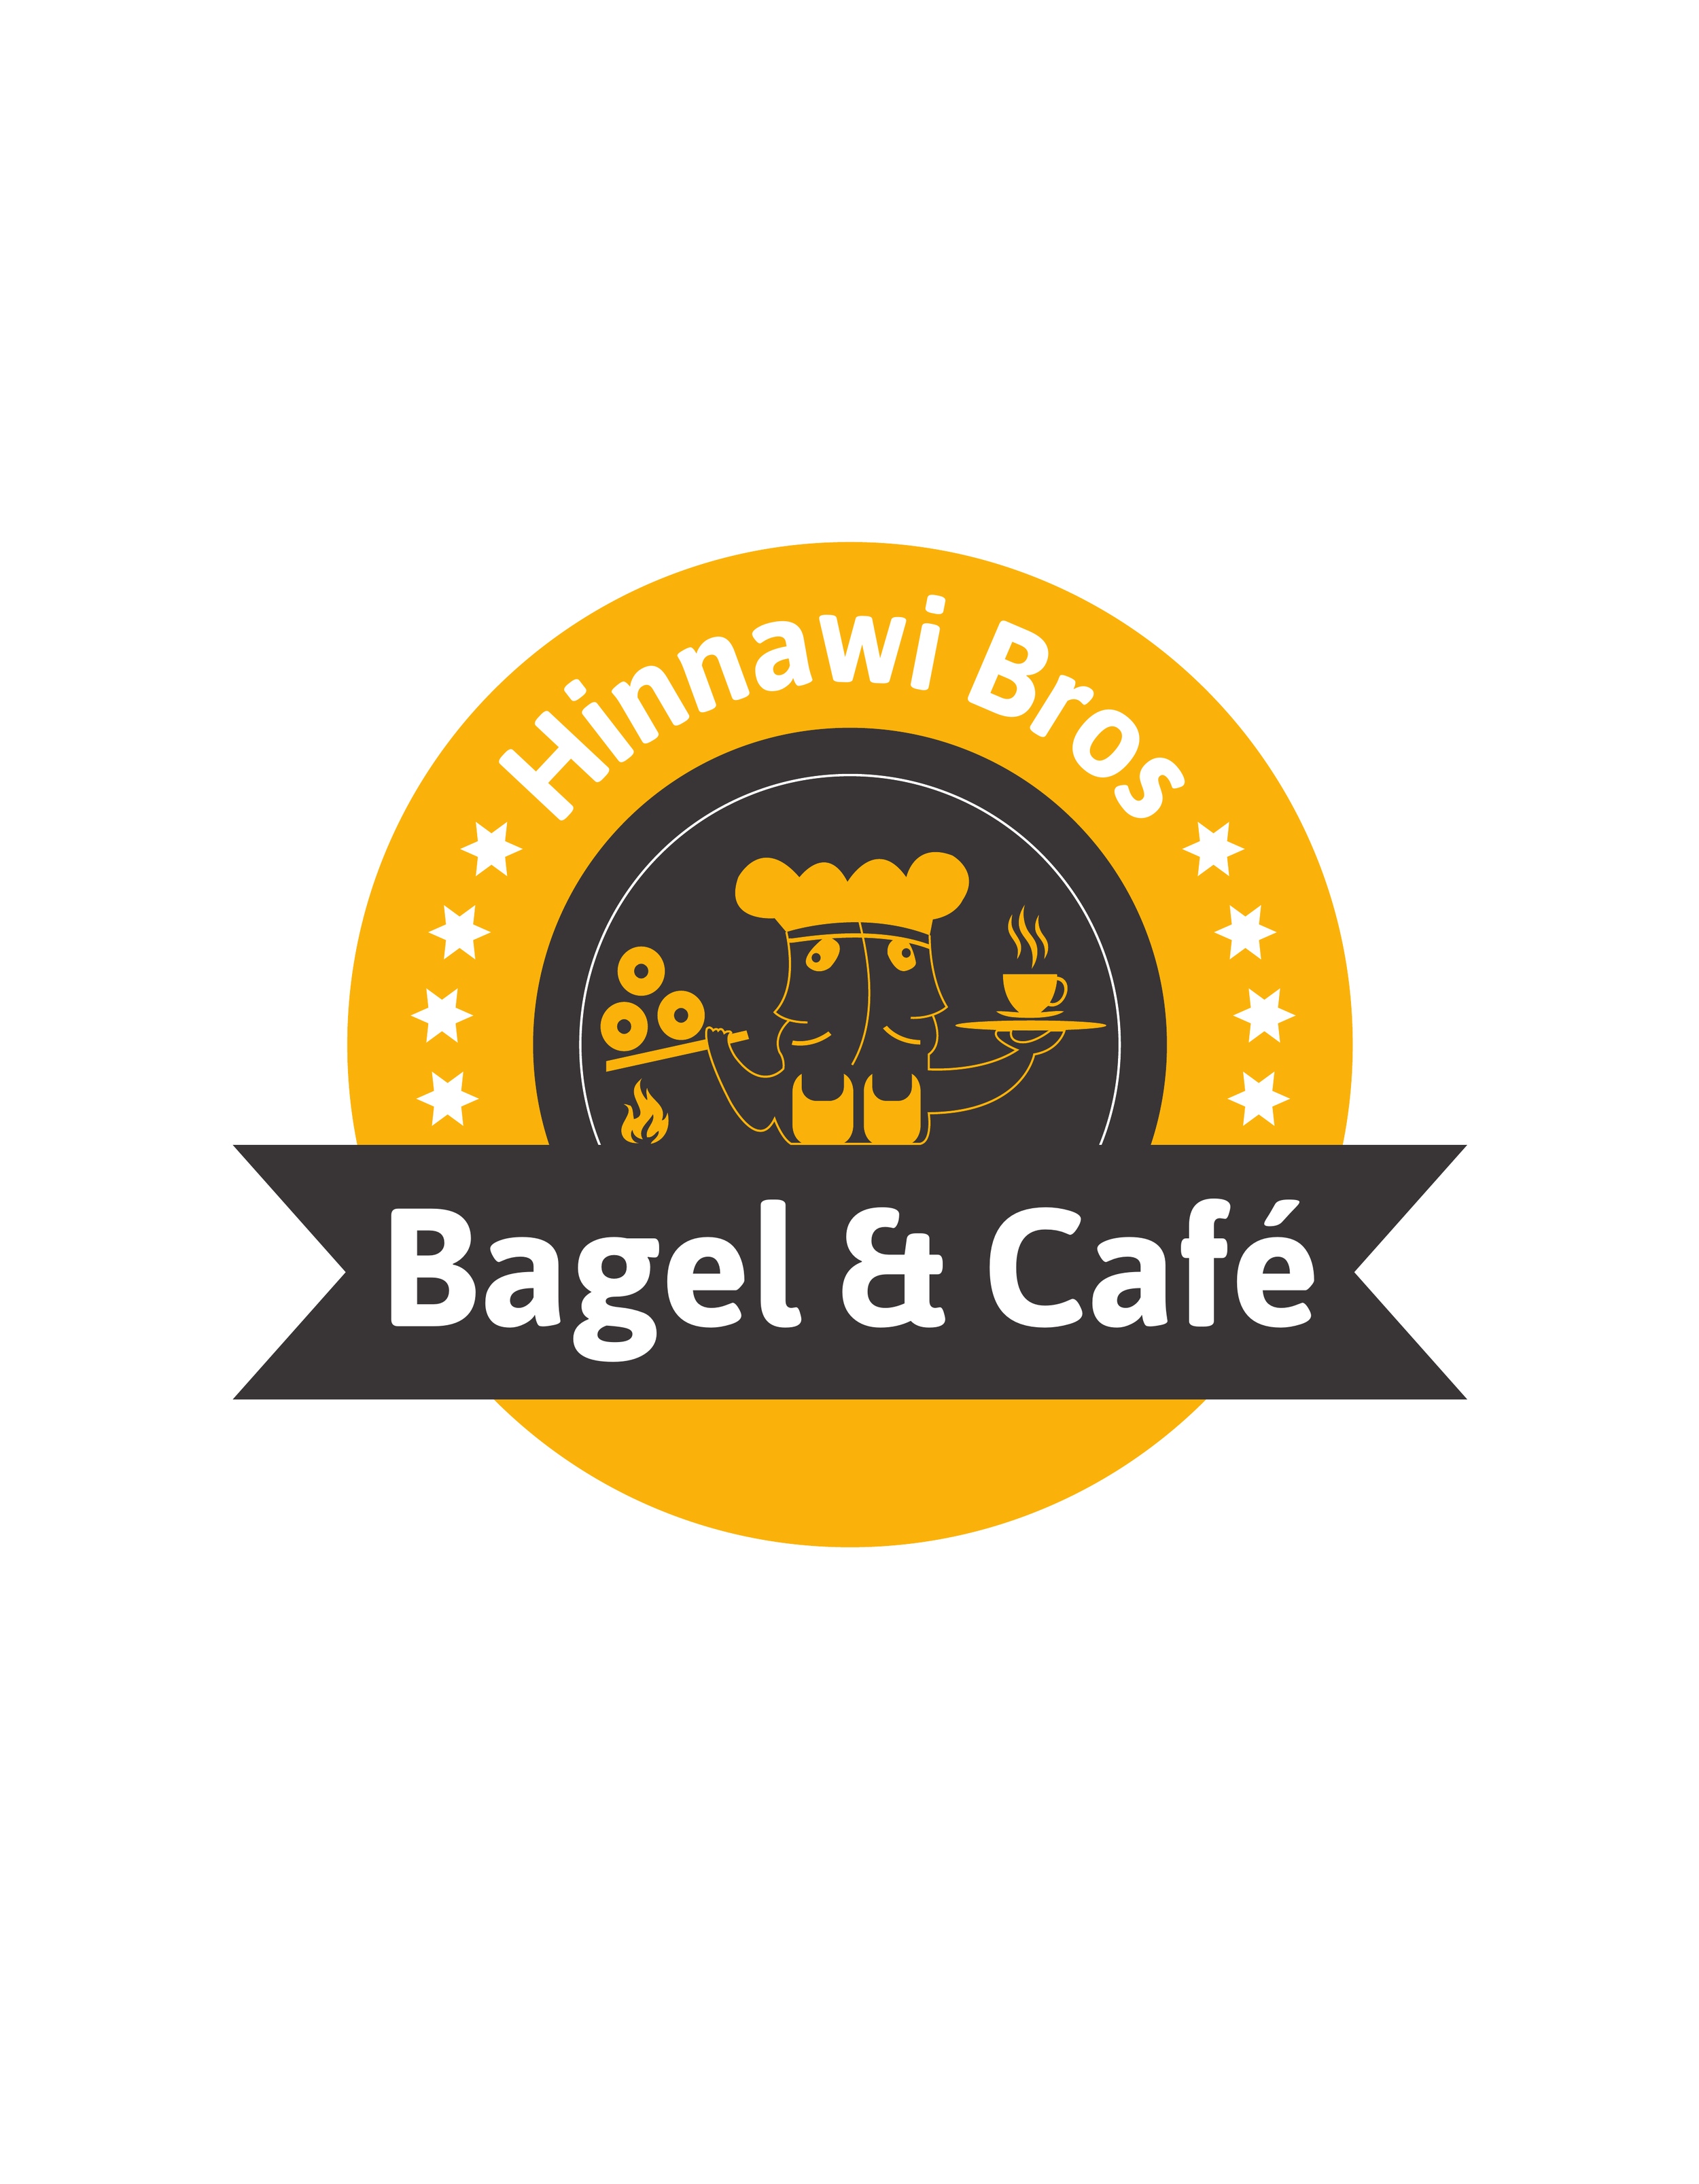 Hinnawi Bros Logo_final.ai_000001.png